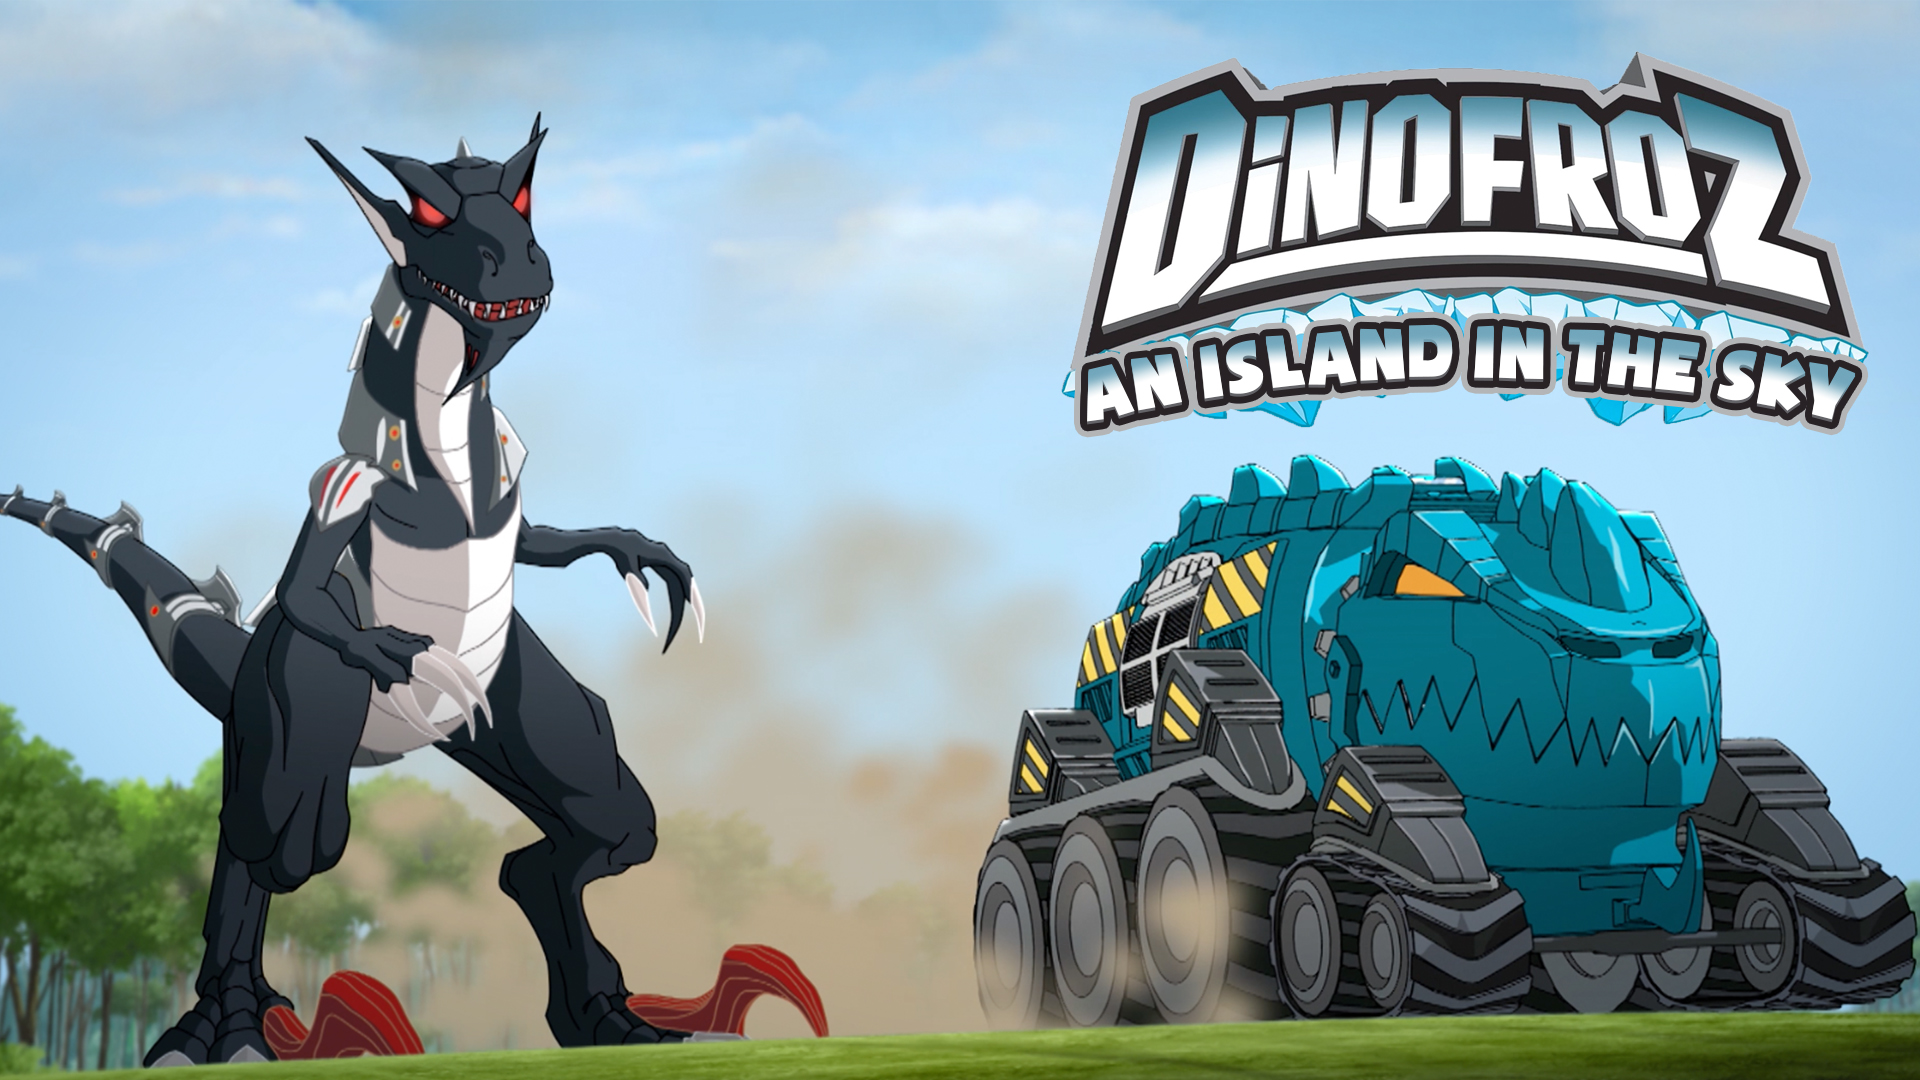 Dinofroz: An Island in the Sky